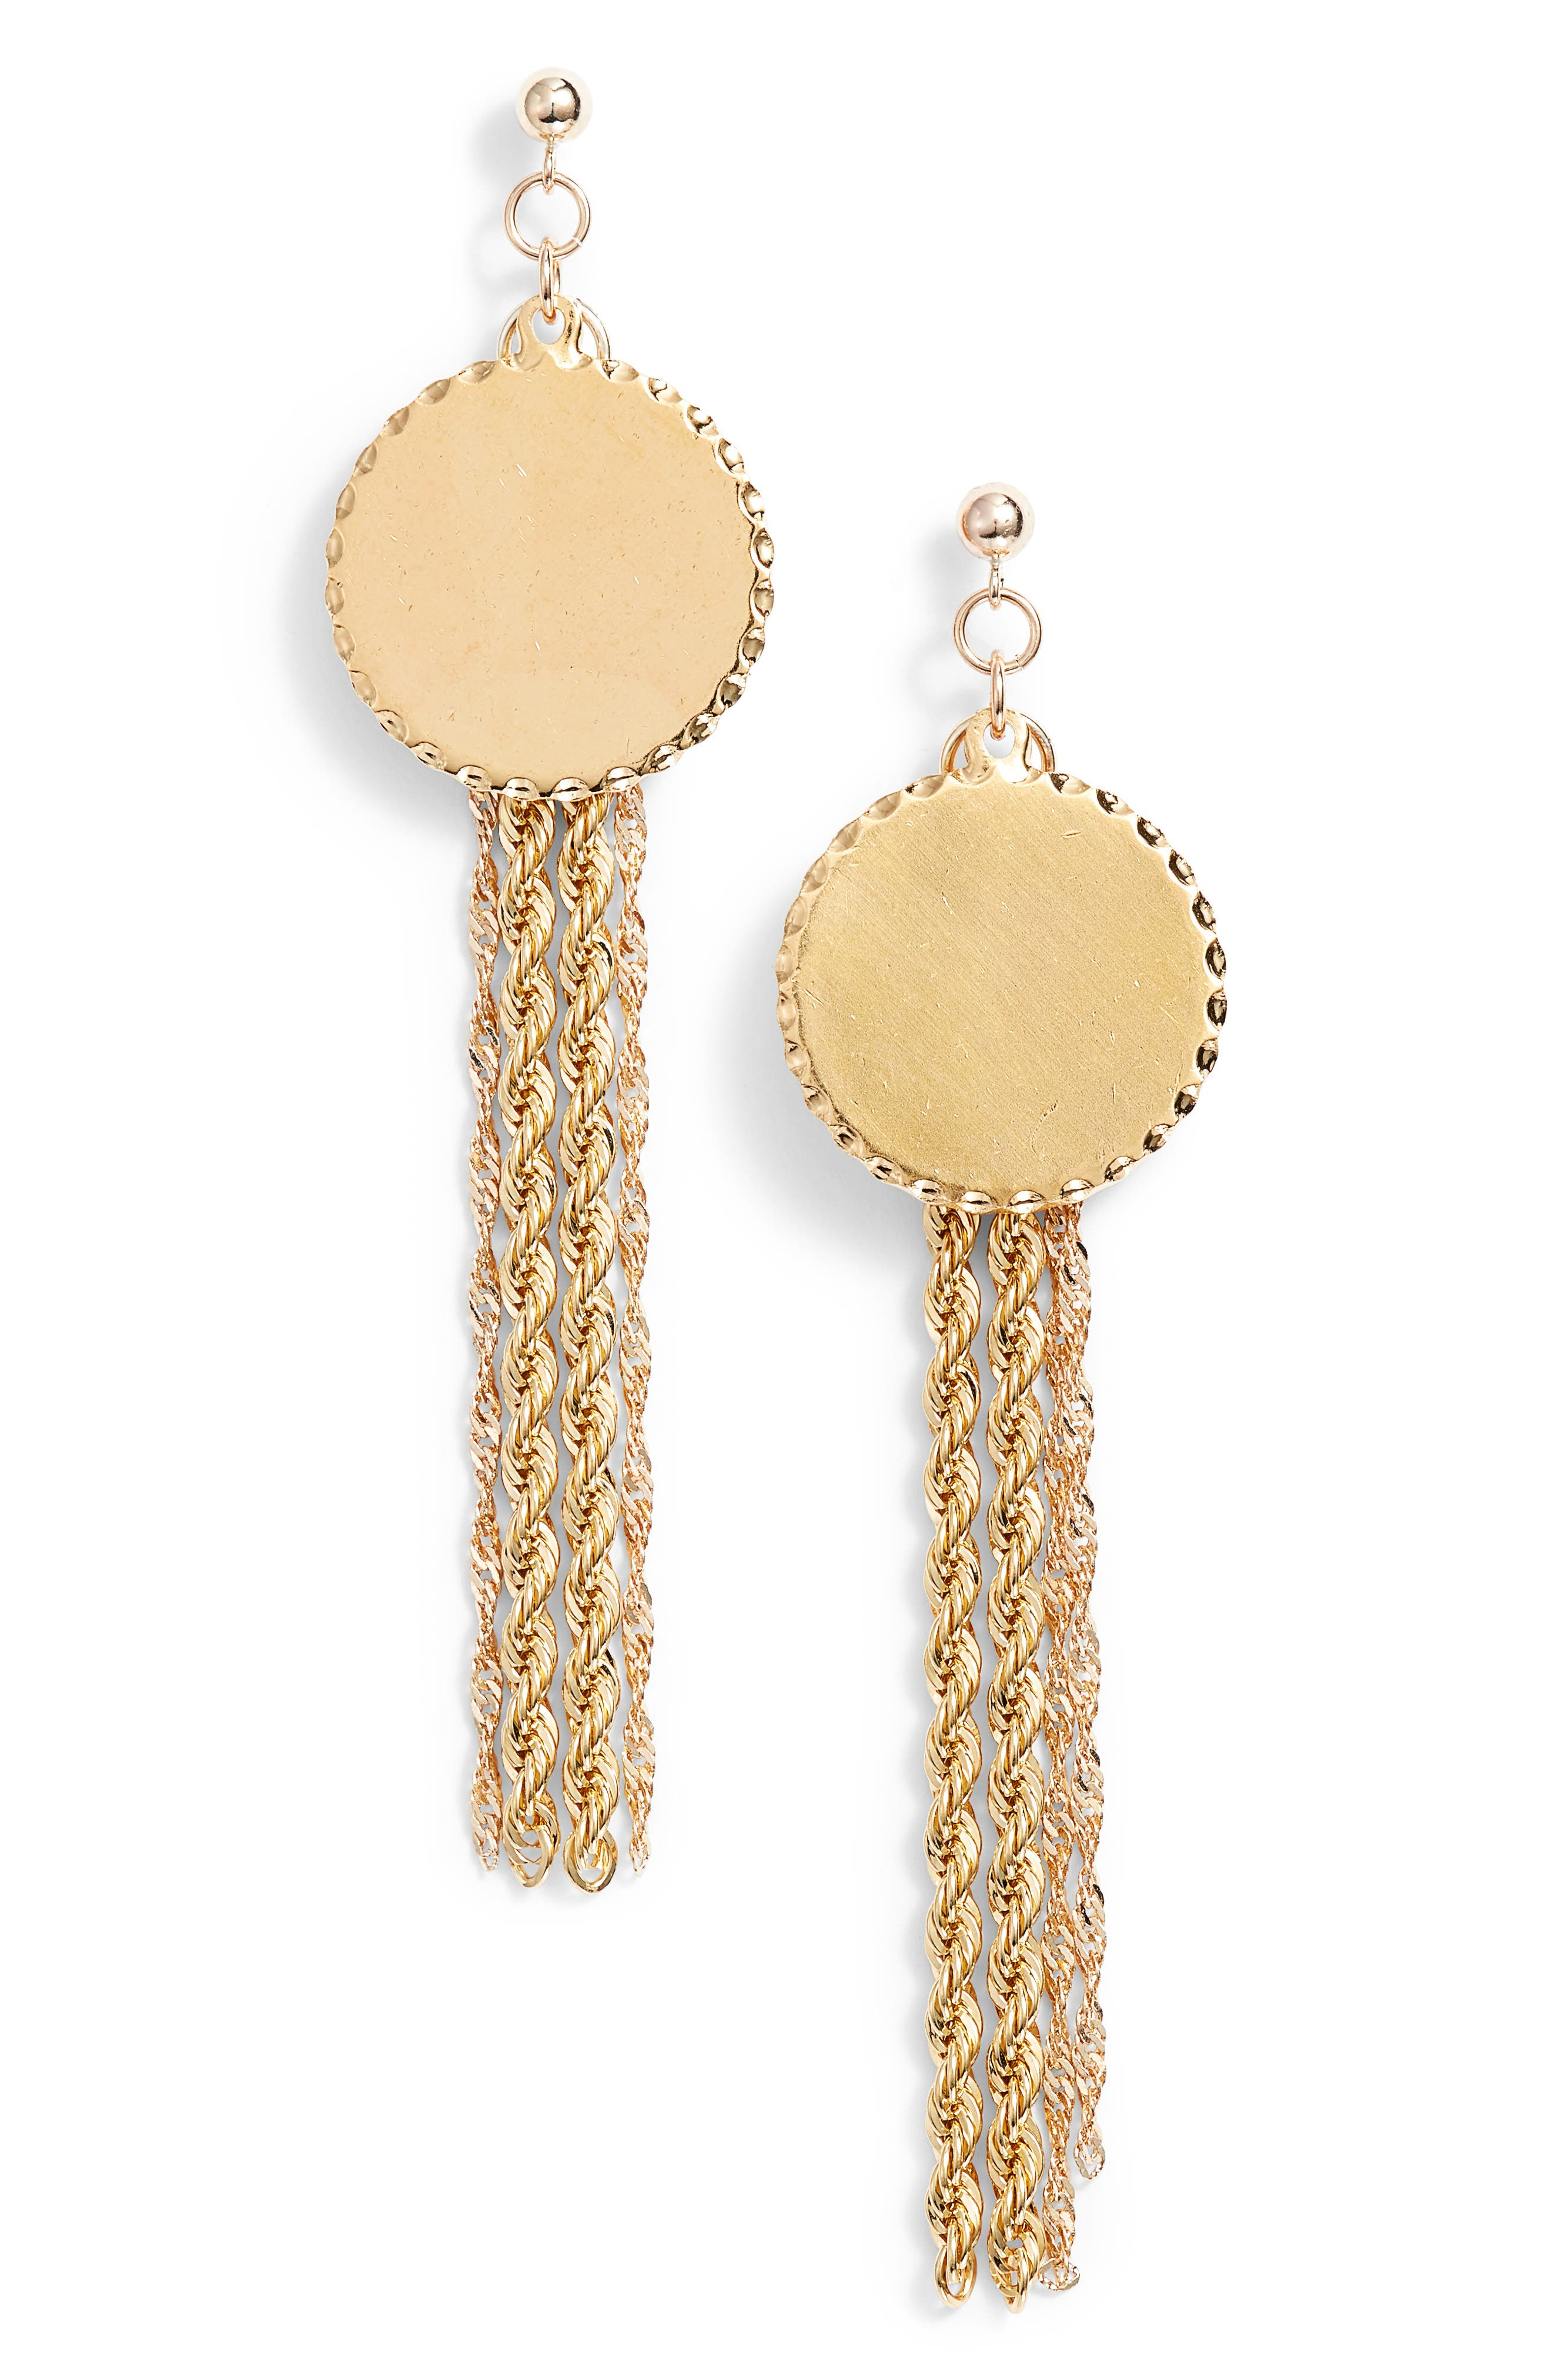 Temperance Chain Fringe Earrings,                         Main,                         color, Yellow Gold